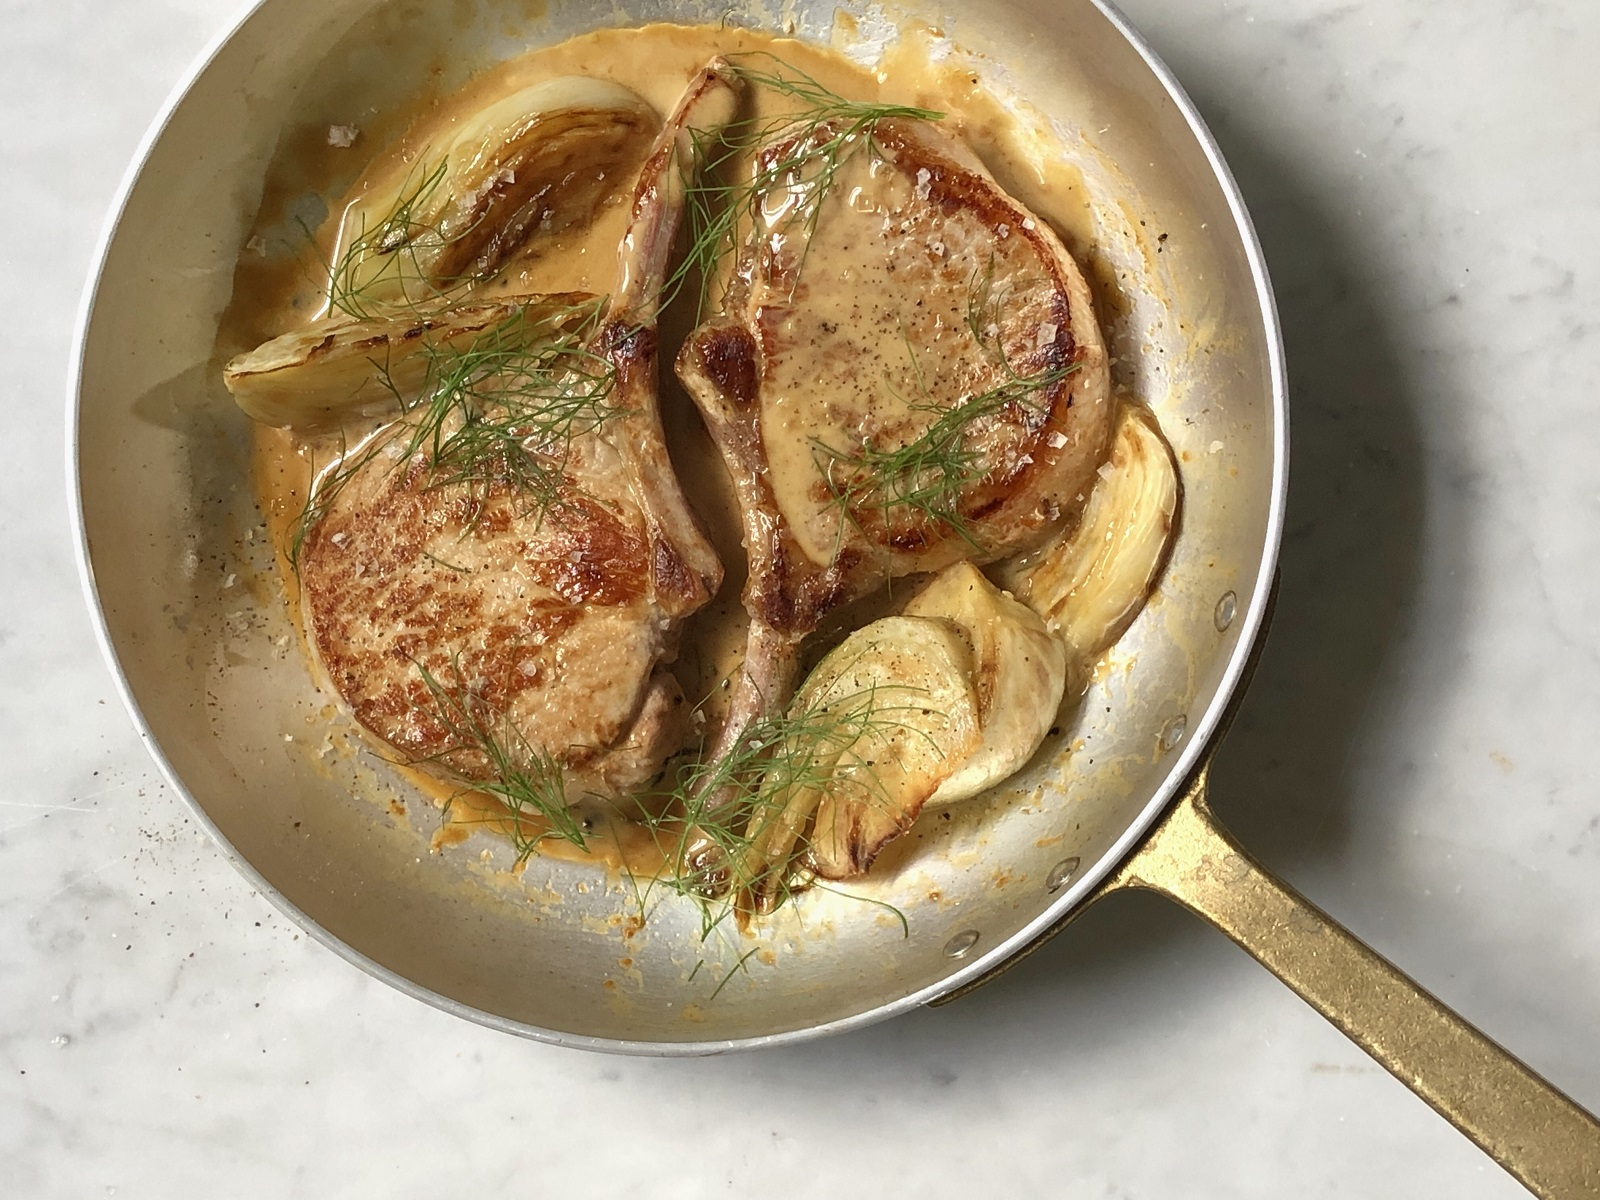 Pan fried pork cutlets with fennel